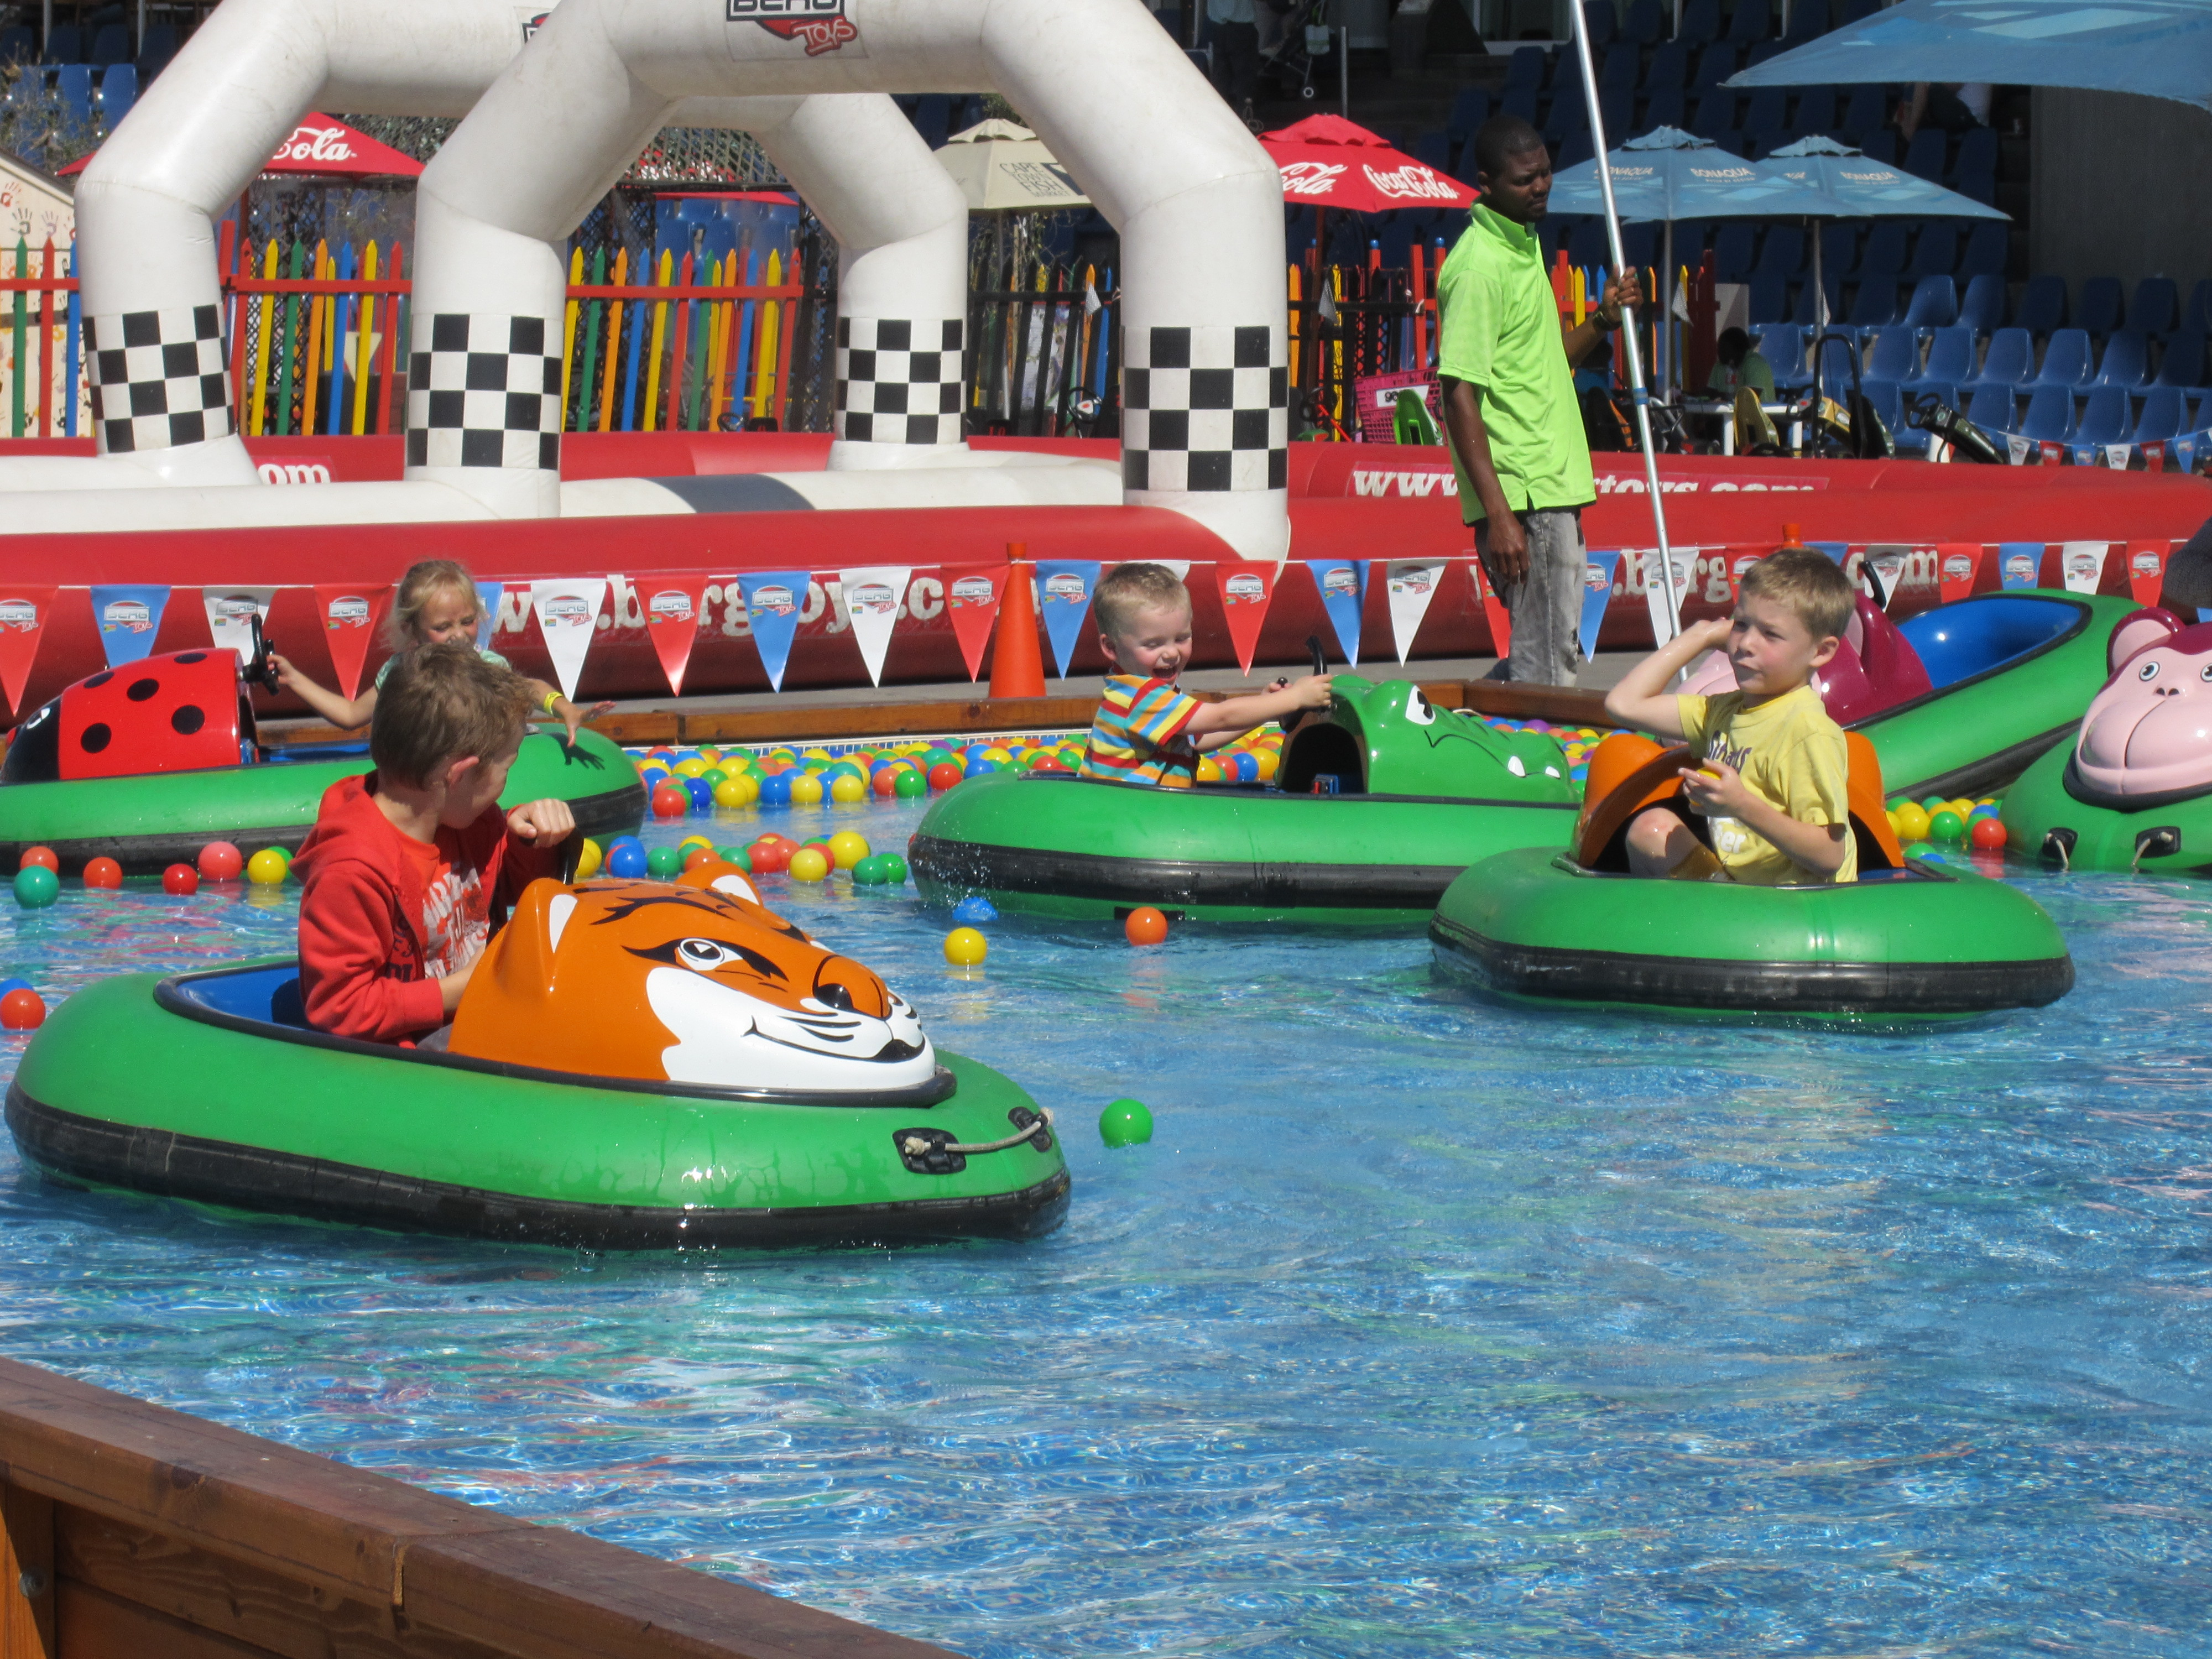 Kids in Barcachoc Bumper boats 3